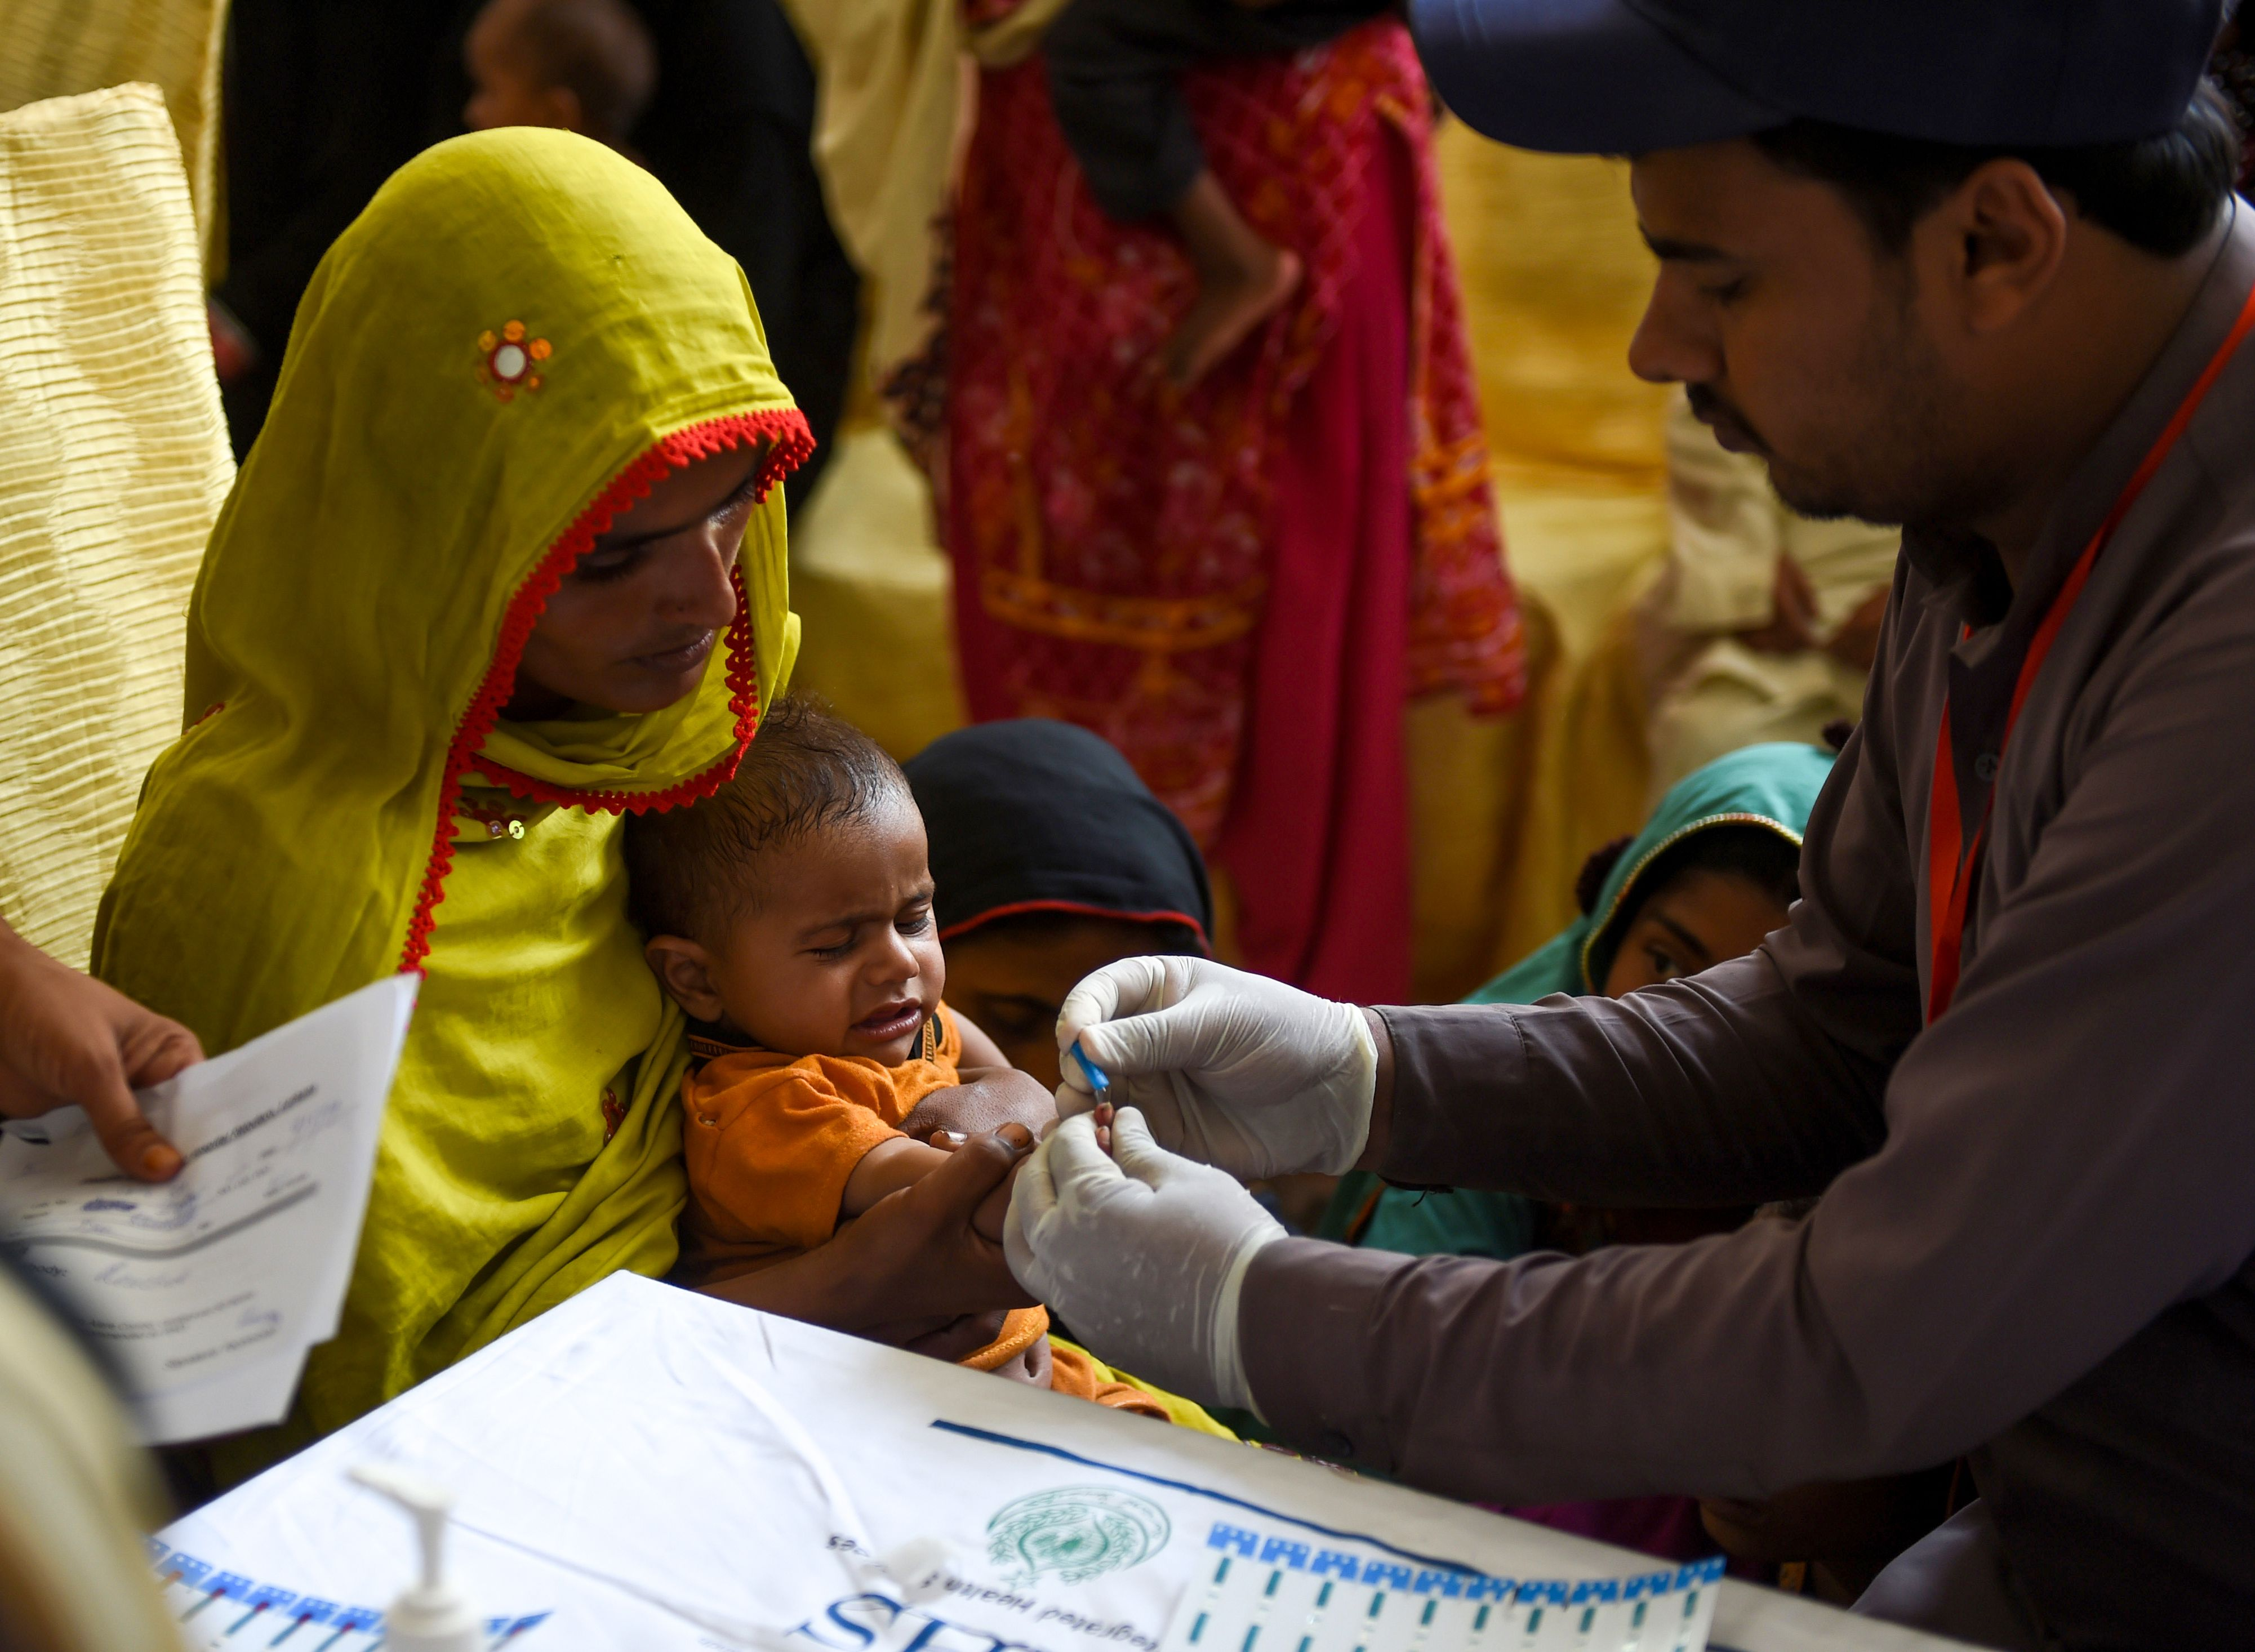 In this image taken on May 9, 2019, a Pakistani paramedic takes a blood sample from a baby for a HIV test at a state-run hospital in Rato Dero in the district of Larkana of the southern Sindh province. - Parents nervously watch over their children as they jostle in line to be tested for HIV in a village near Pakistans Larkana amid a sudden outbreak among its young who have allegedly been infected by a doctor using a contaminated syringe. (Photo by RIZWAN TABASSUM / AFP) / TO GO WITH: Pakistan-health-HIV-children, SCENE by Ashraf KHAN        (RIZWAN TABASSUM/AFP/Getty Images)